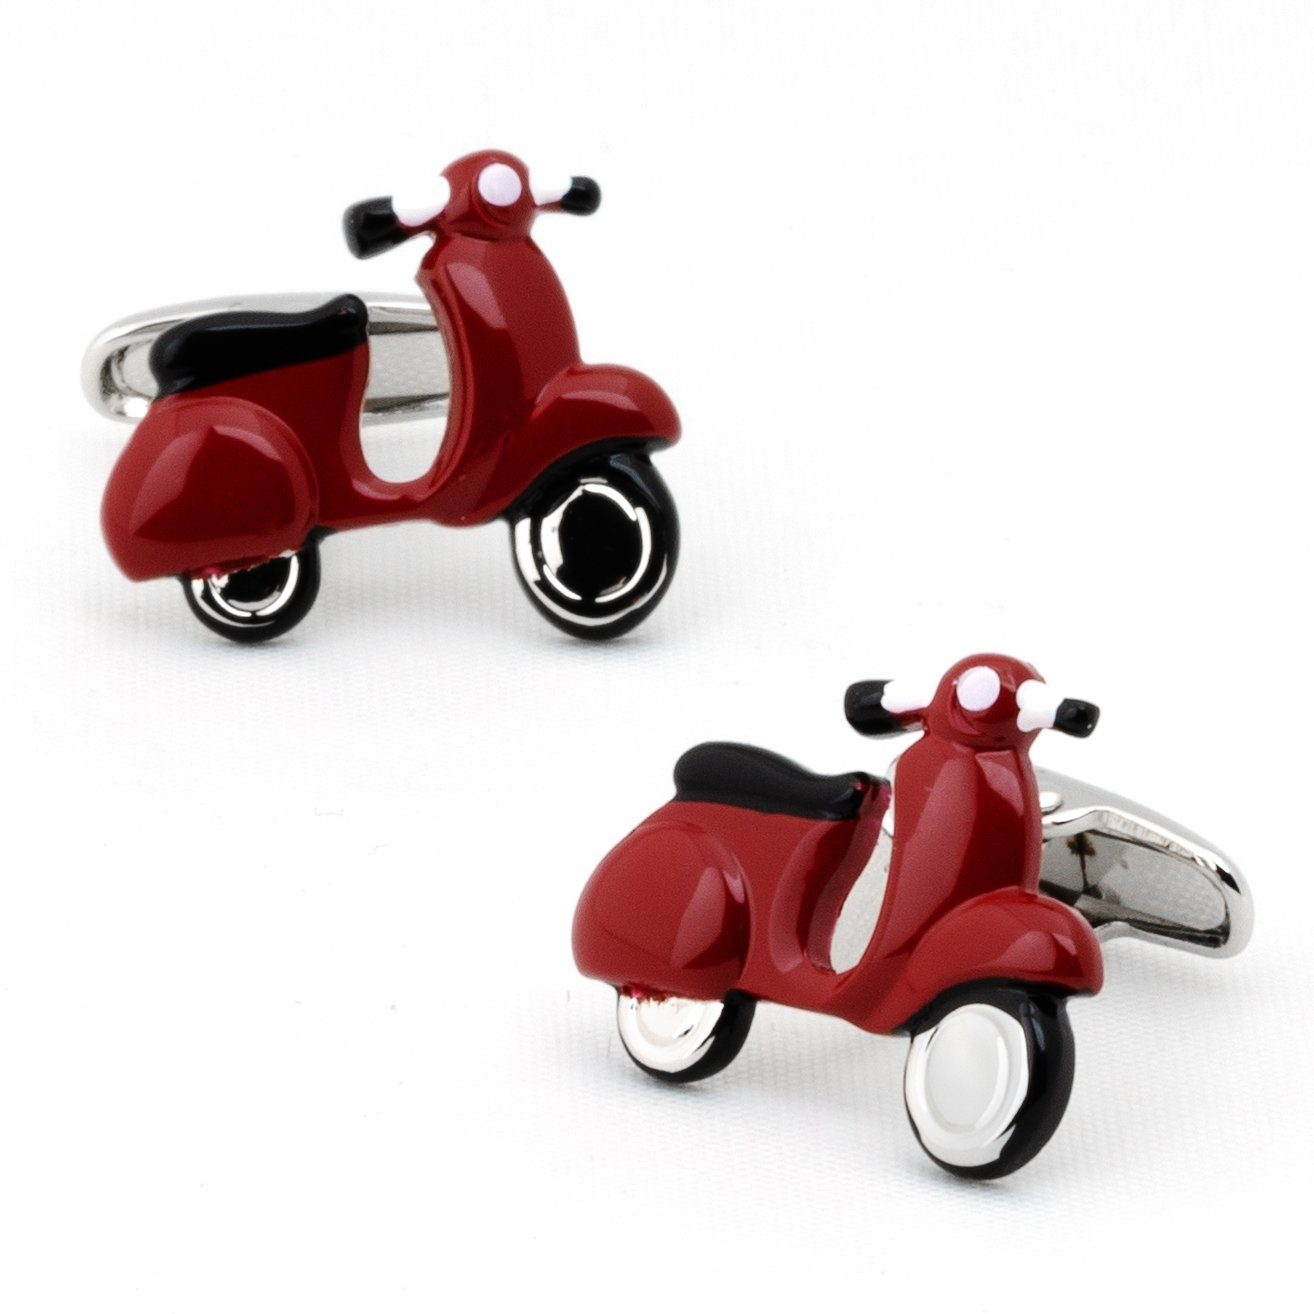 Red Scooter Cufflinks Novelty Cufflinks Clinks Australia Red Scooter Cufflinks